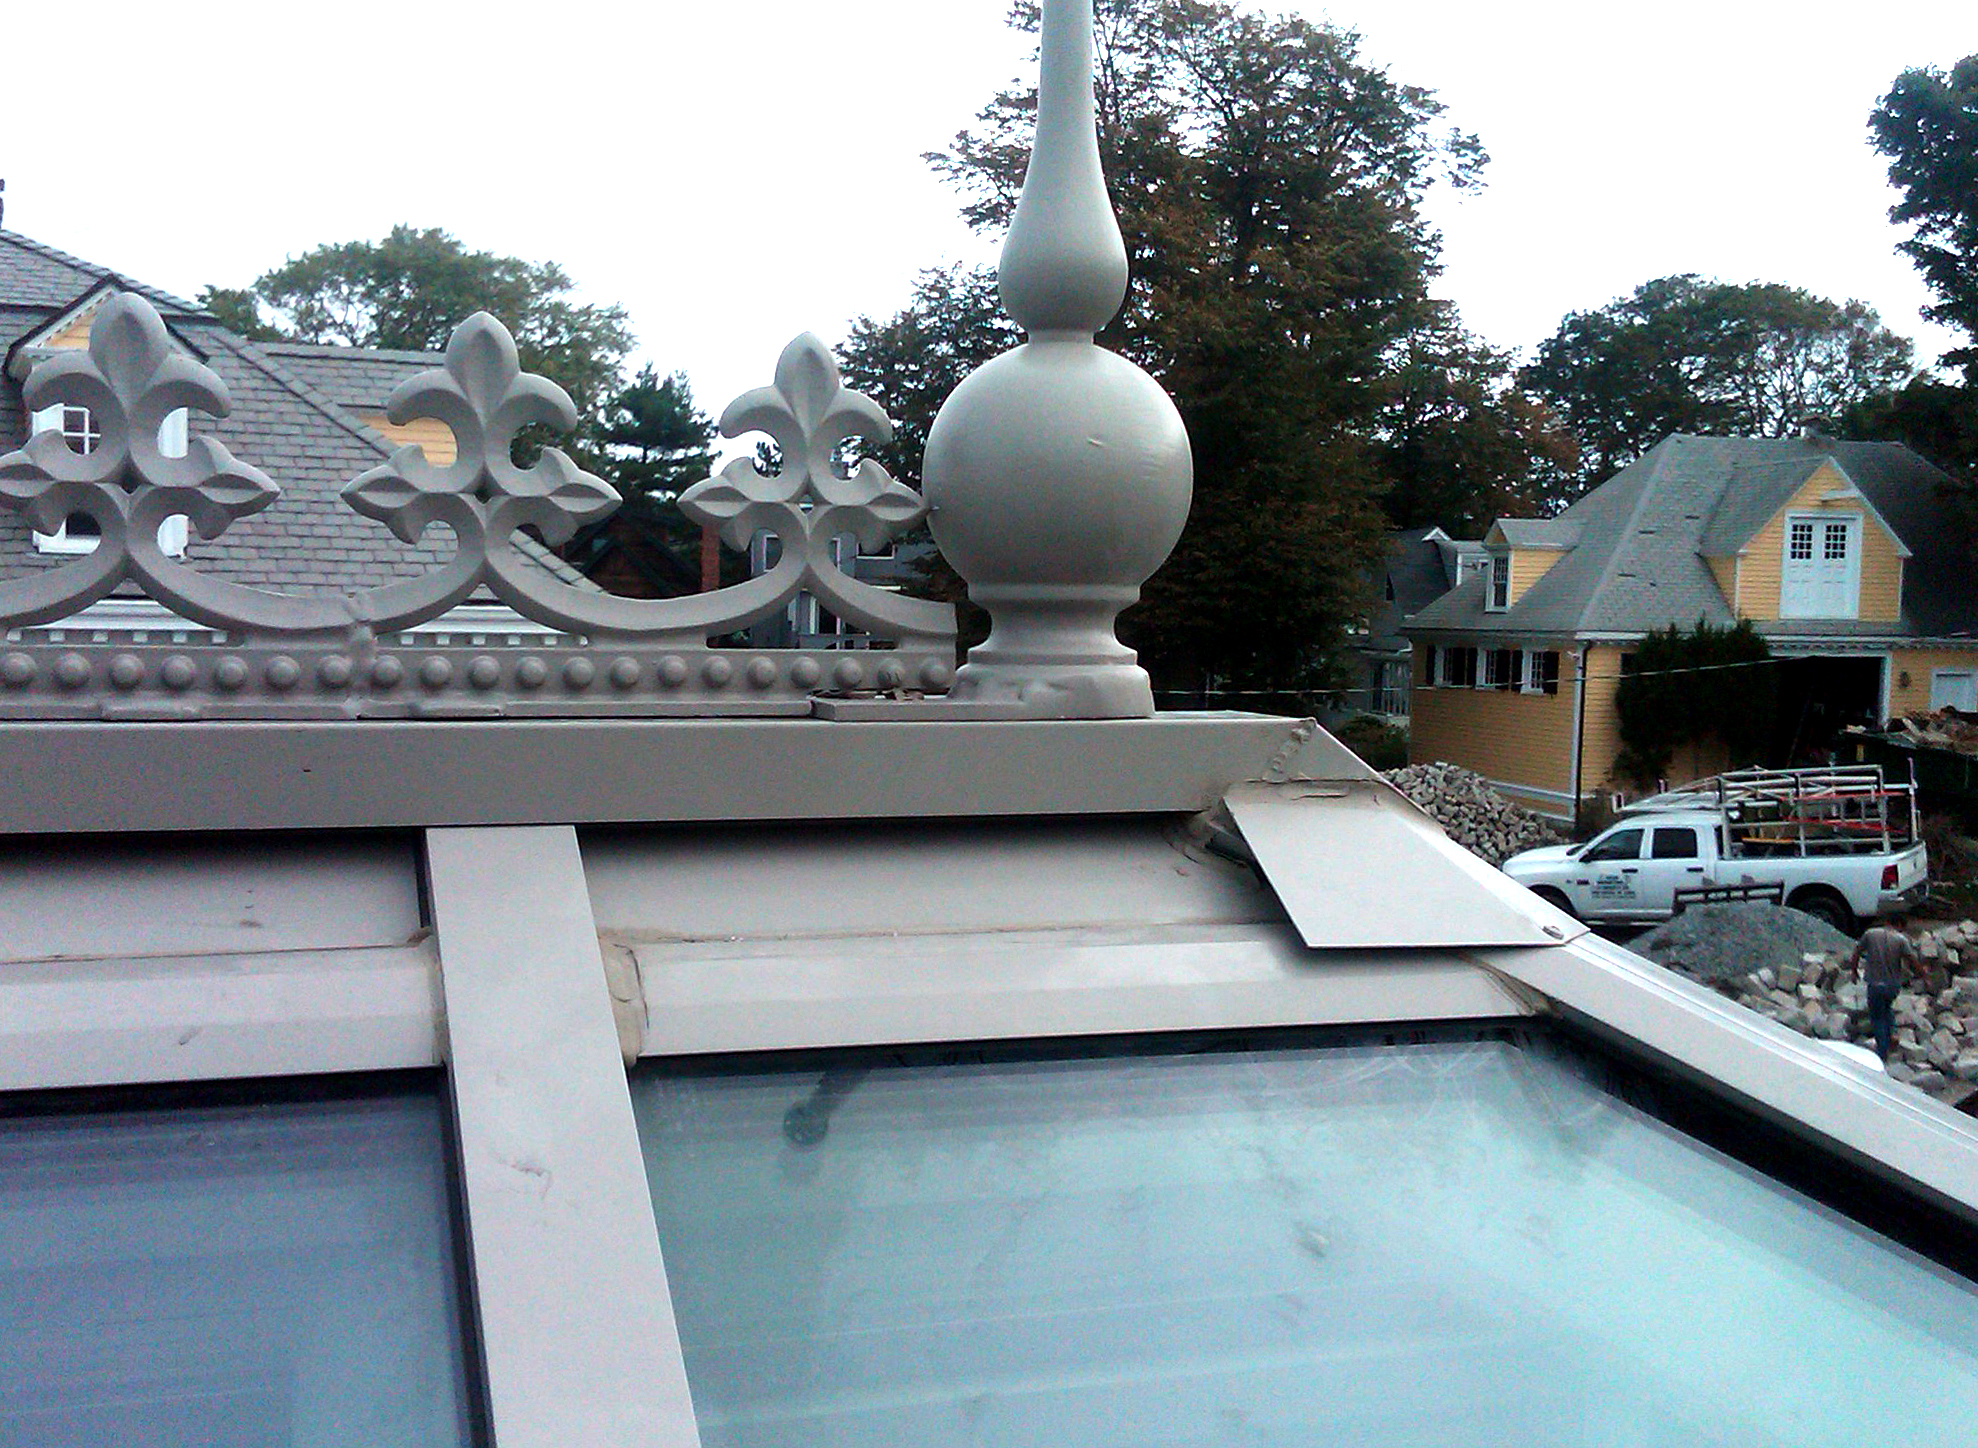 Custom / irregular conservatory featuring a dormer and lantern. Decorative elements include: ridge cresting, finial, transom, base panel, palladian, crown molding, corner post, SDL, gutter, and downspout.